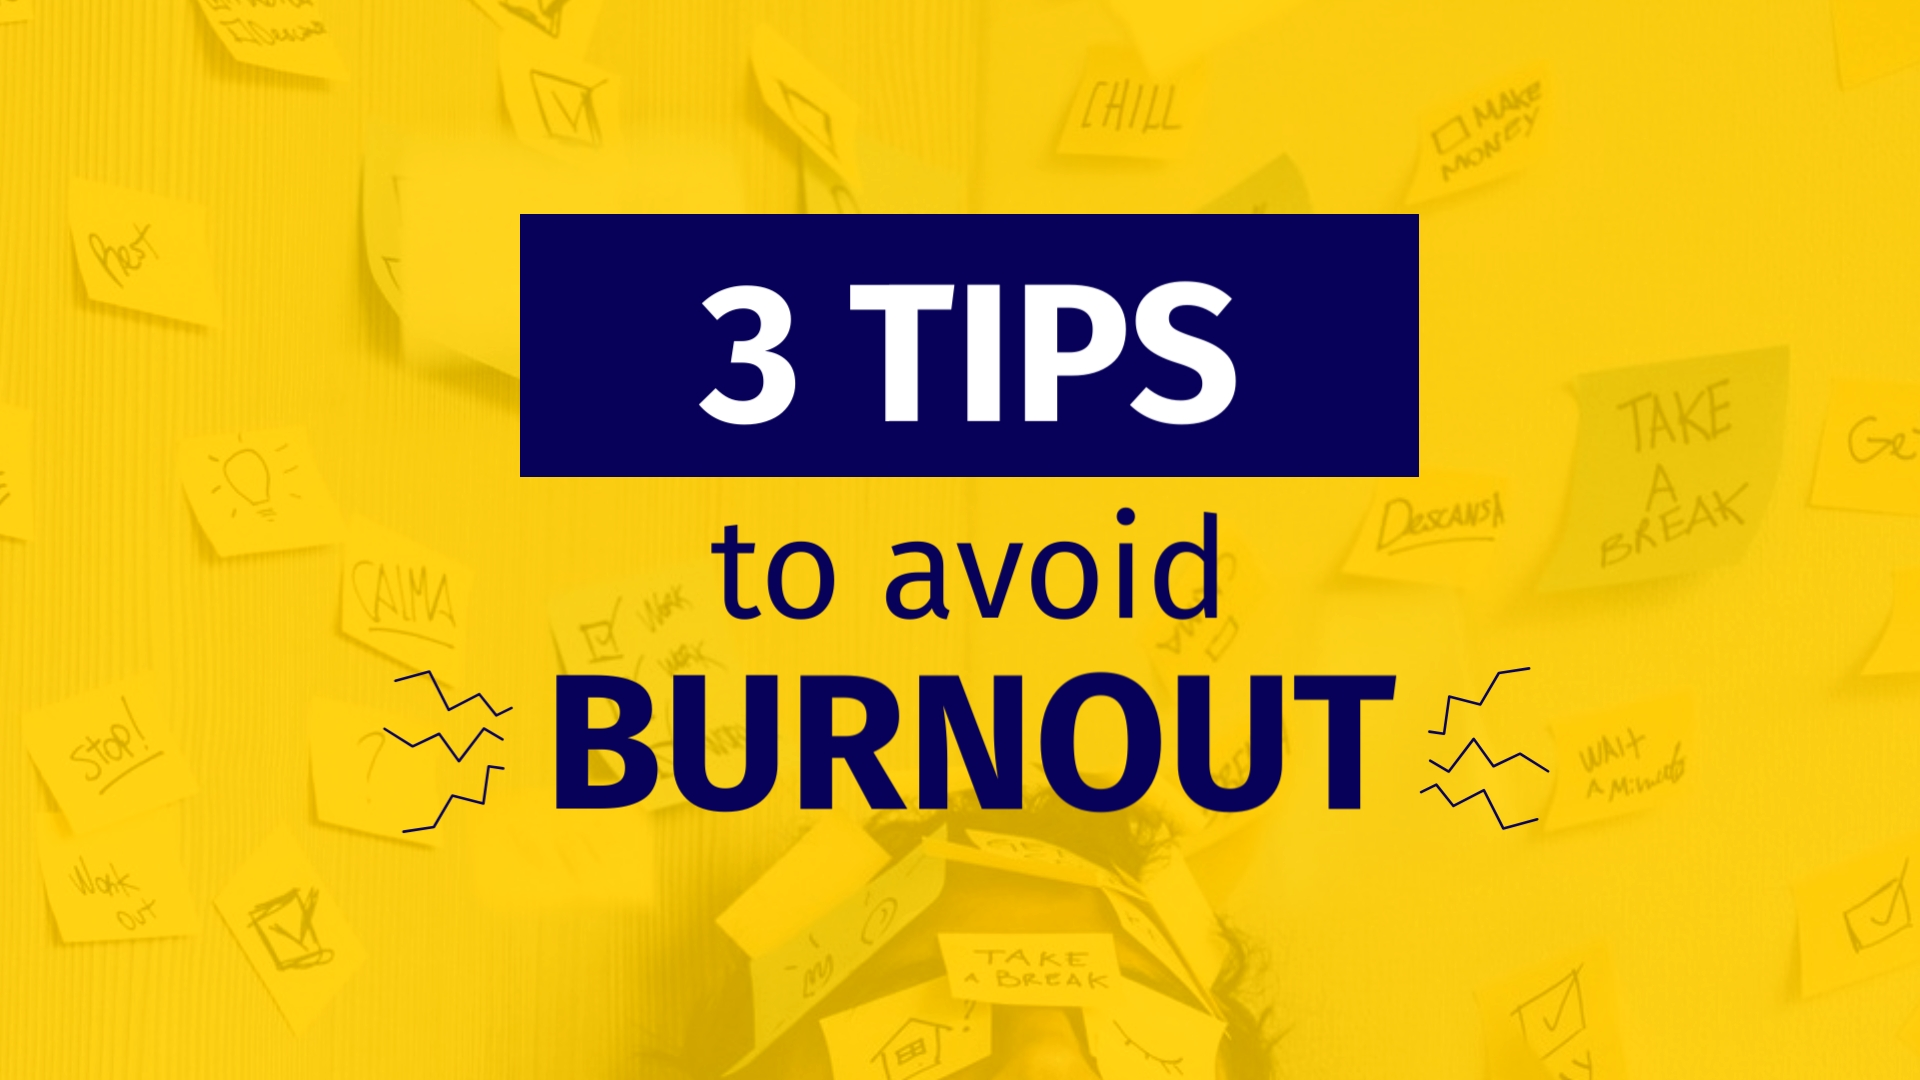 3 Tips to Avoid Burnout - Listicle Video Template